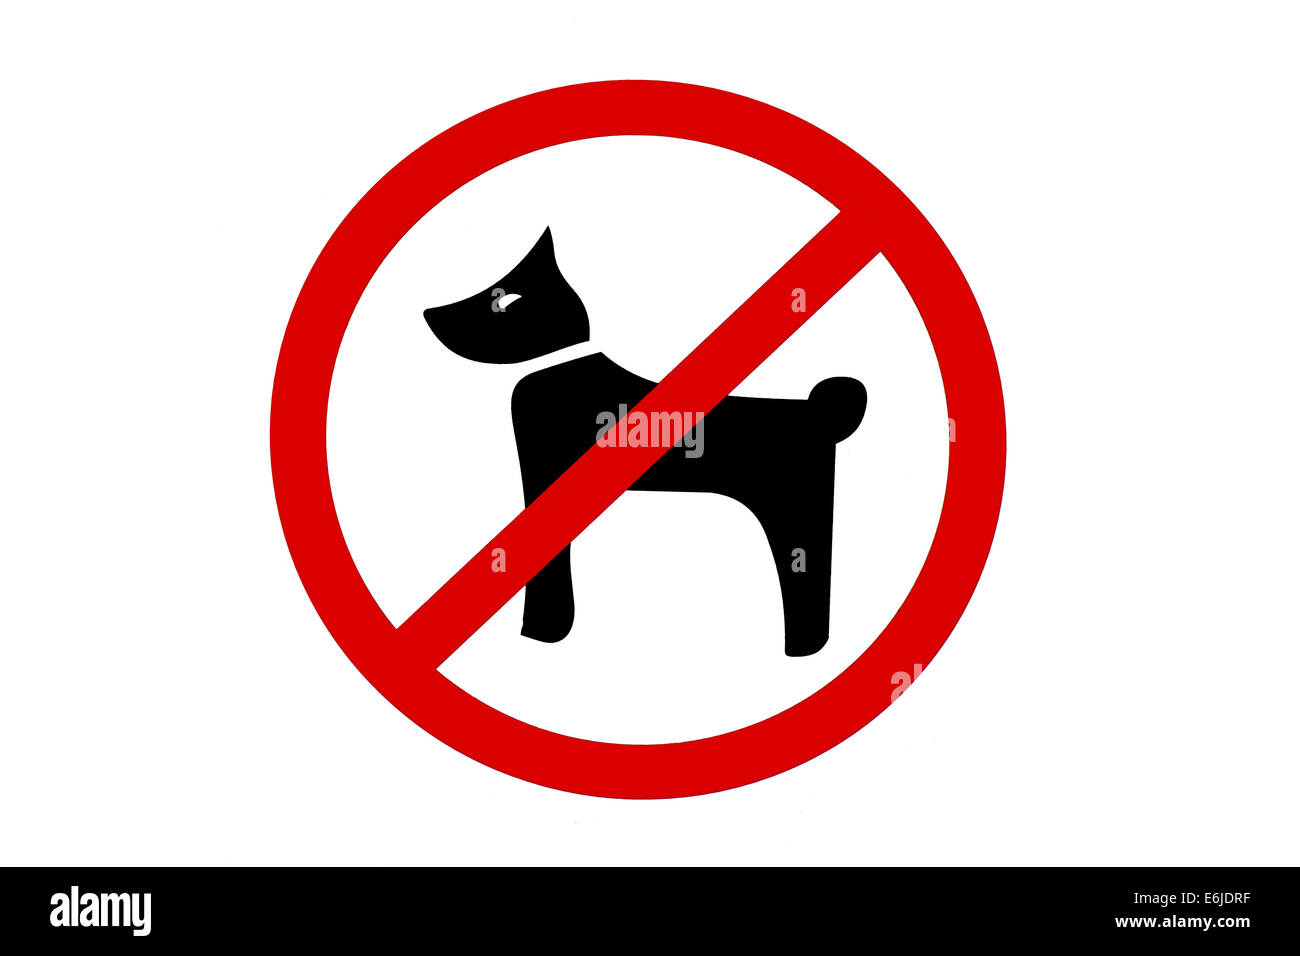 No dogs allowed sign on white background. - Stock Image